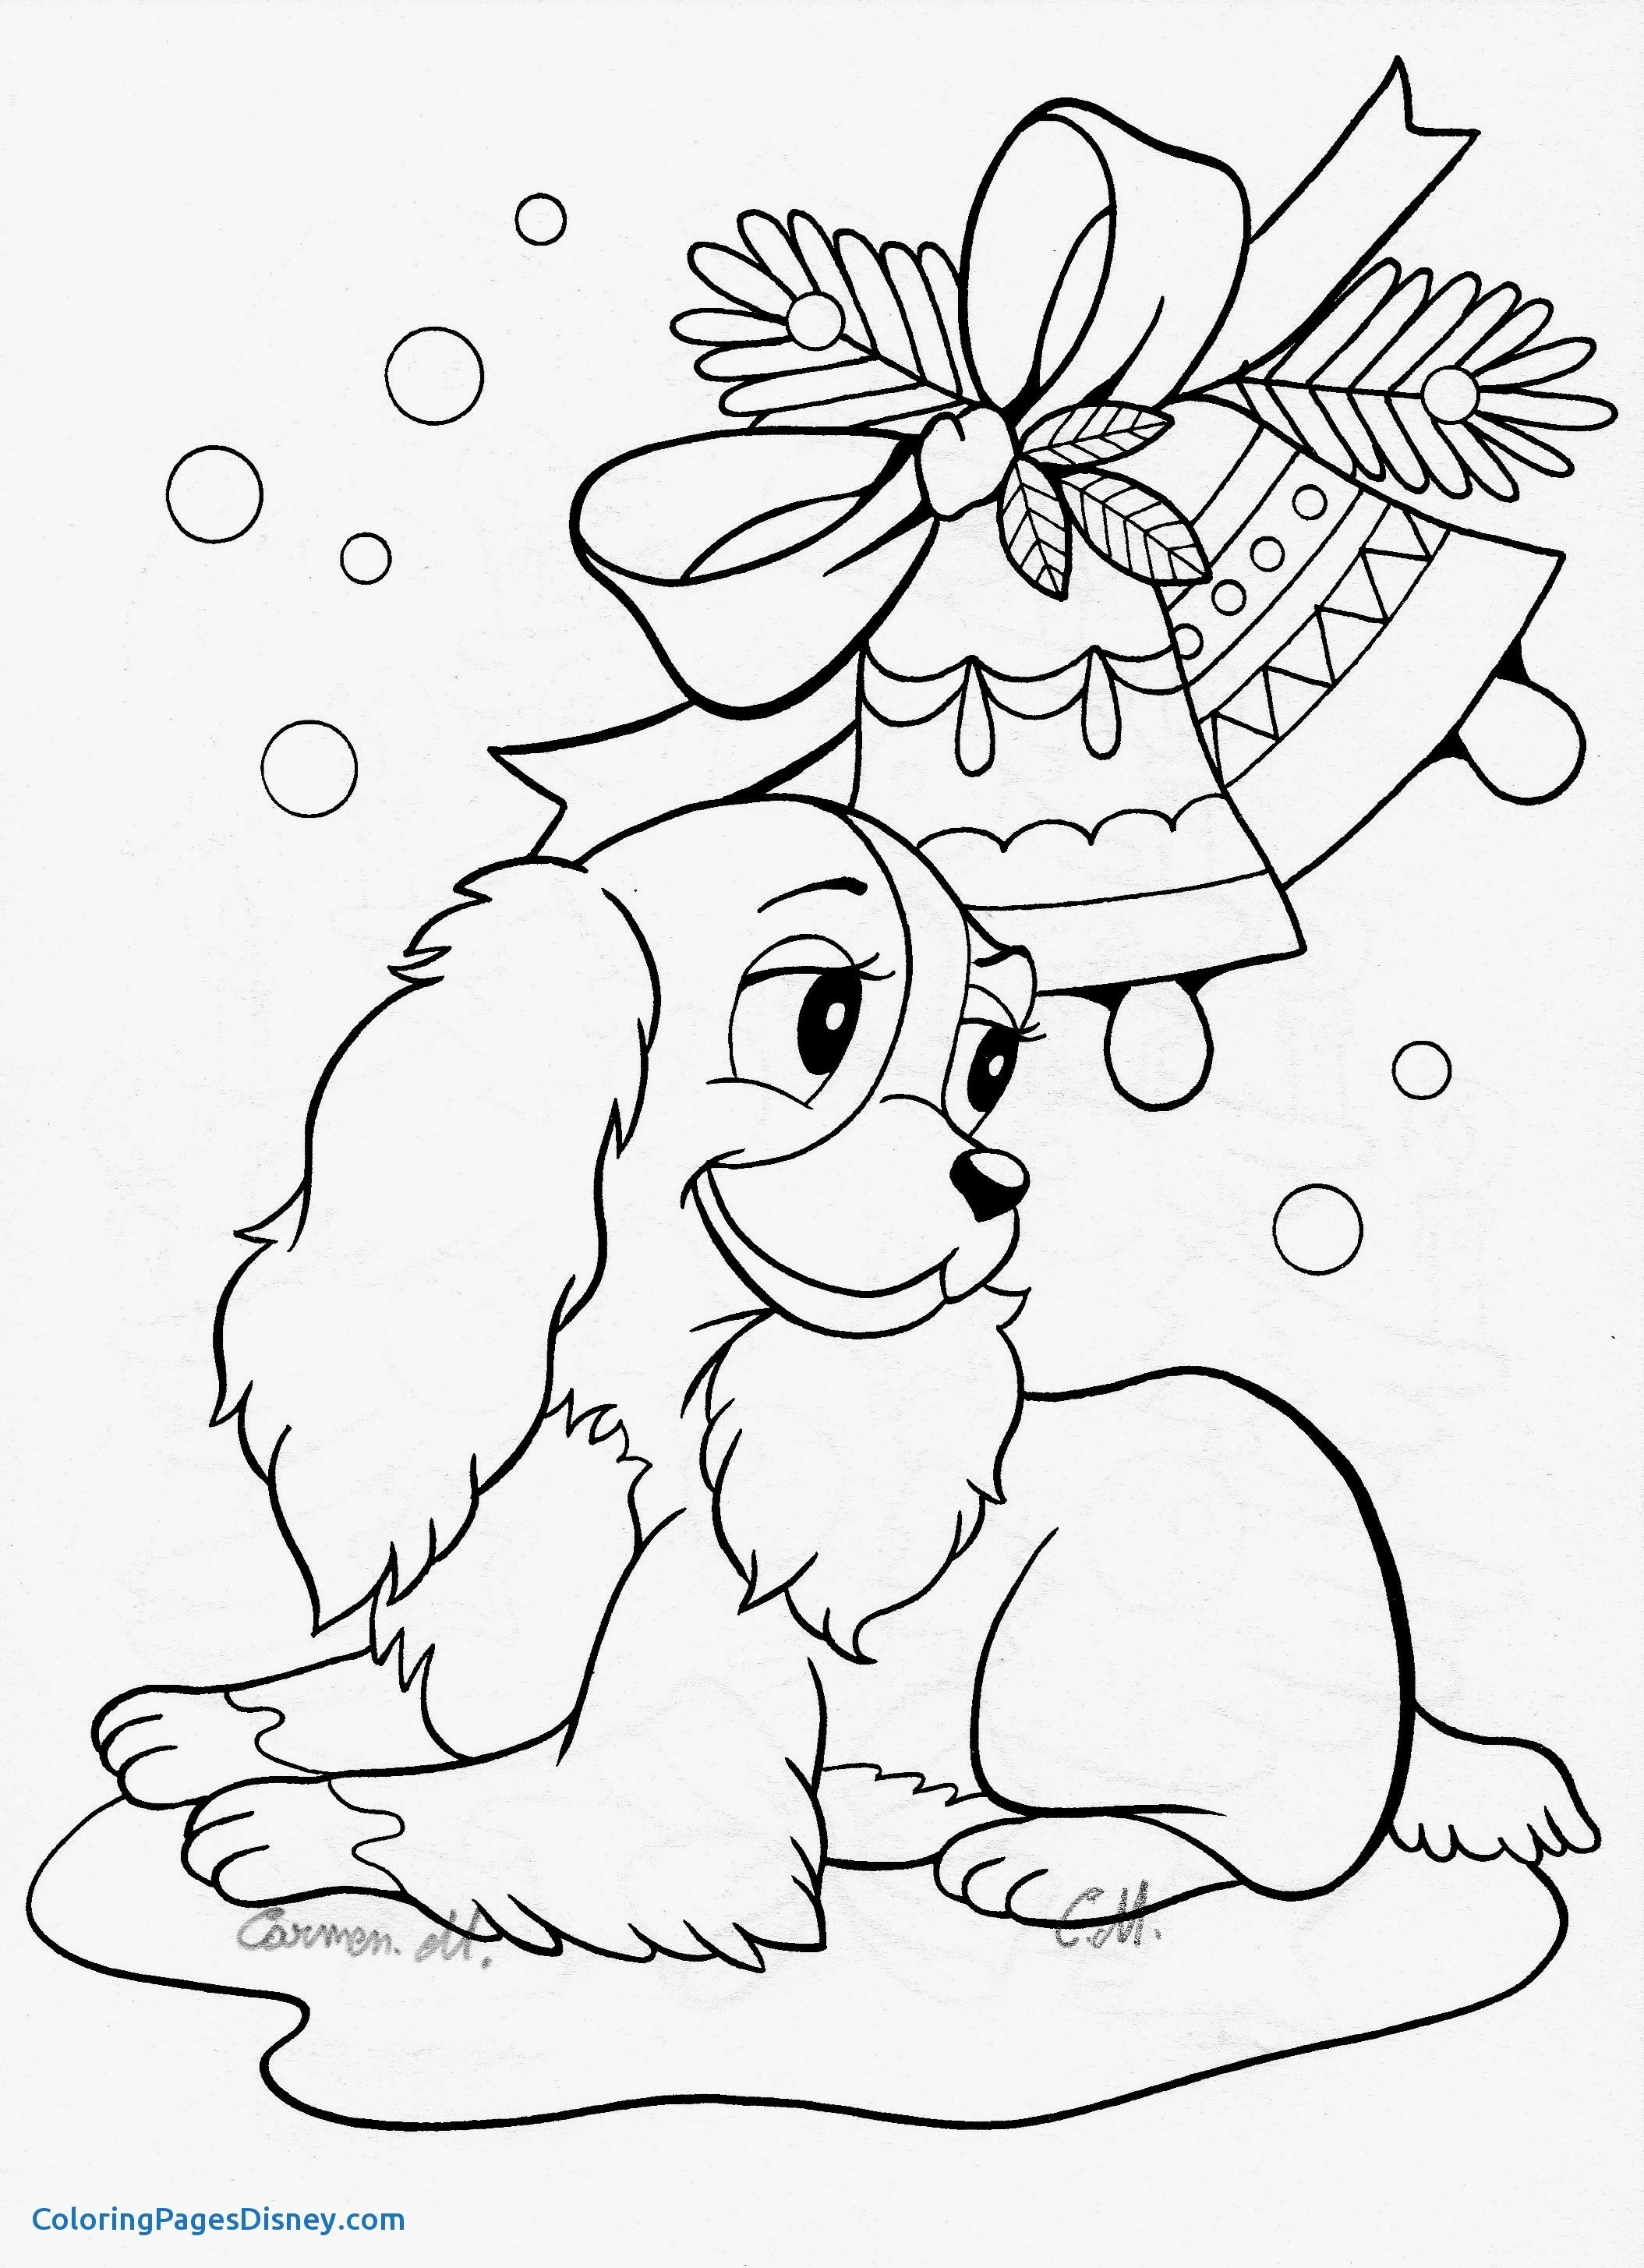 coloring book ~ Free Printableng Sheets Pages For Toddlers Disney ...   2909x2109